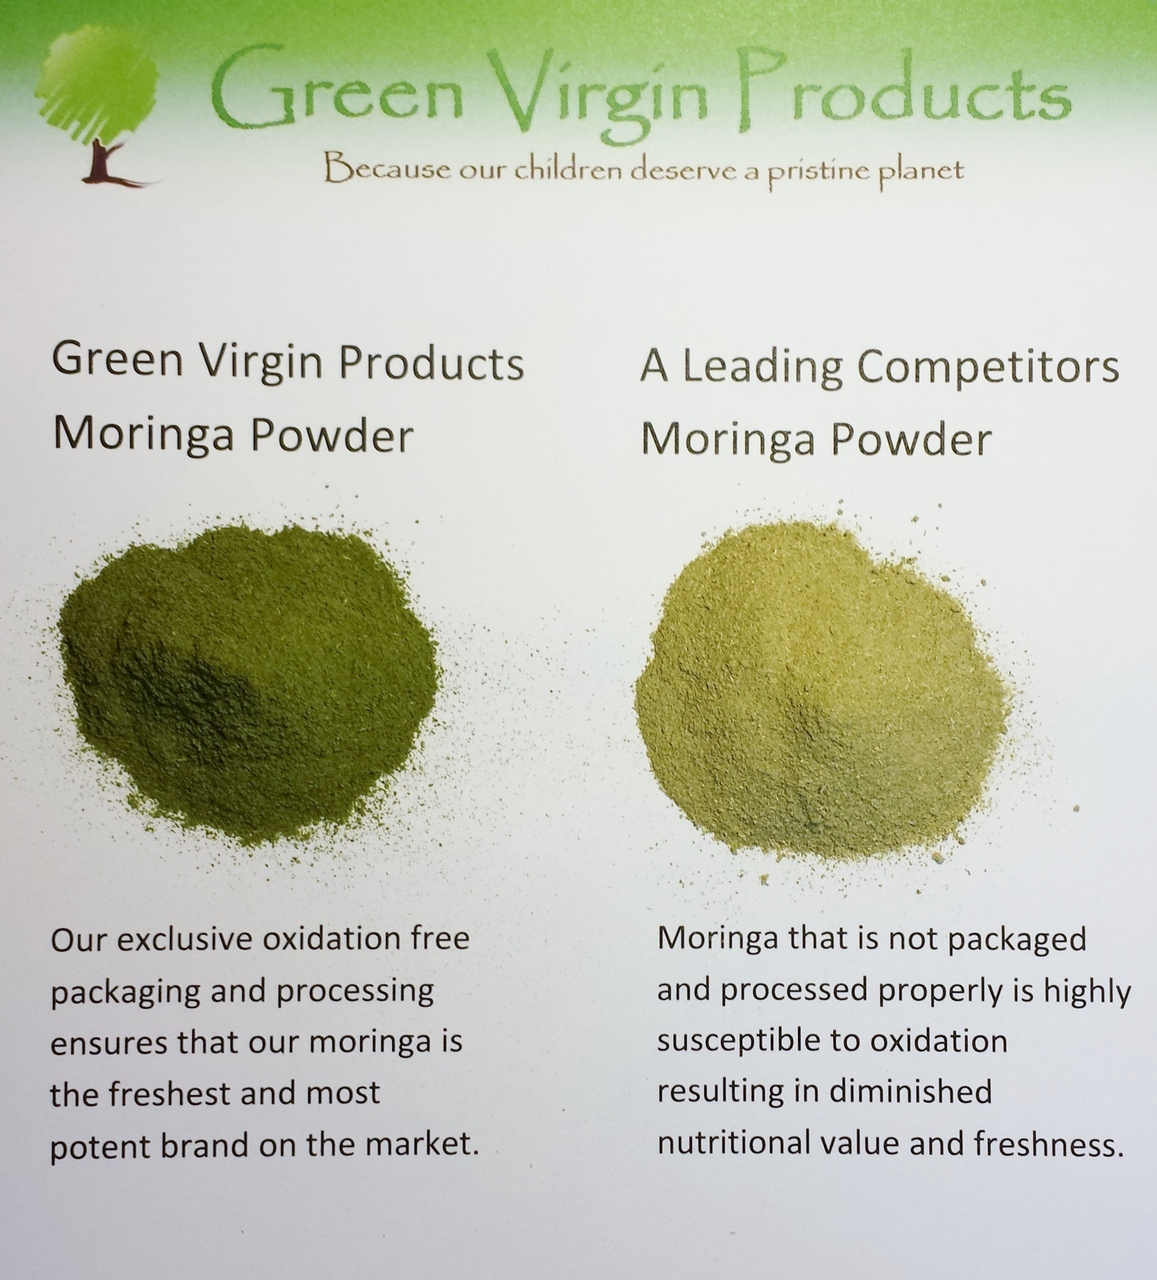 Green Virgin Products Moringa Powder versus a leading competitors Moringa Powder